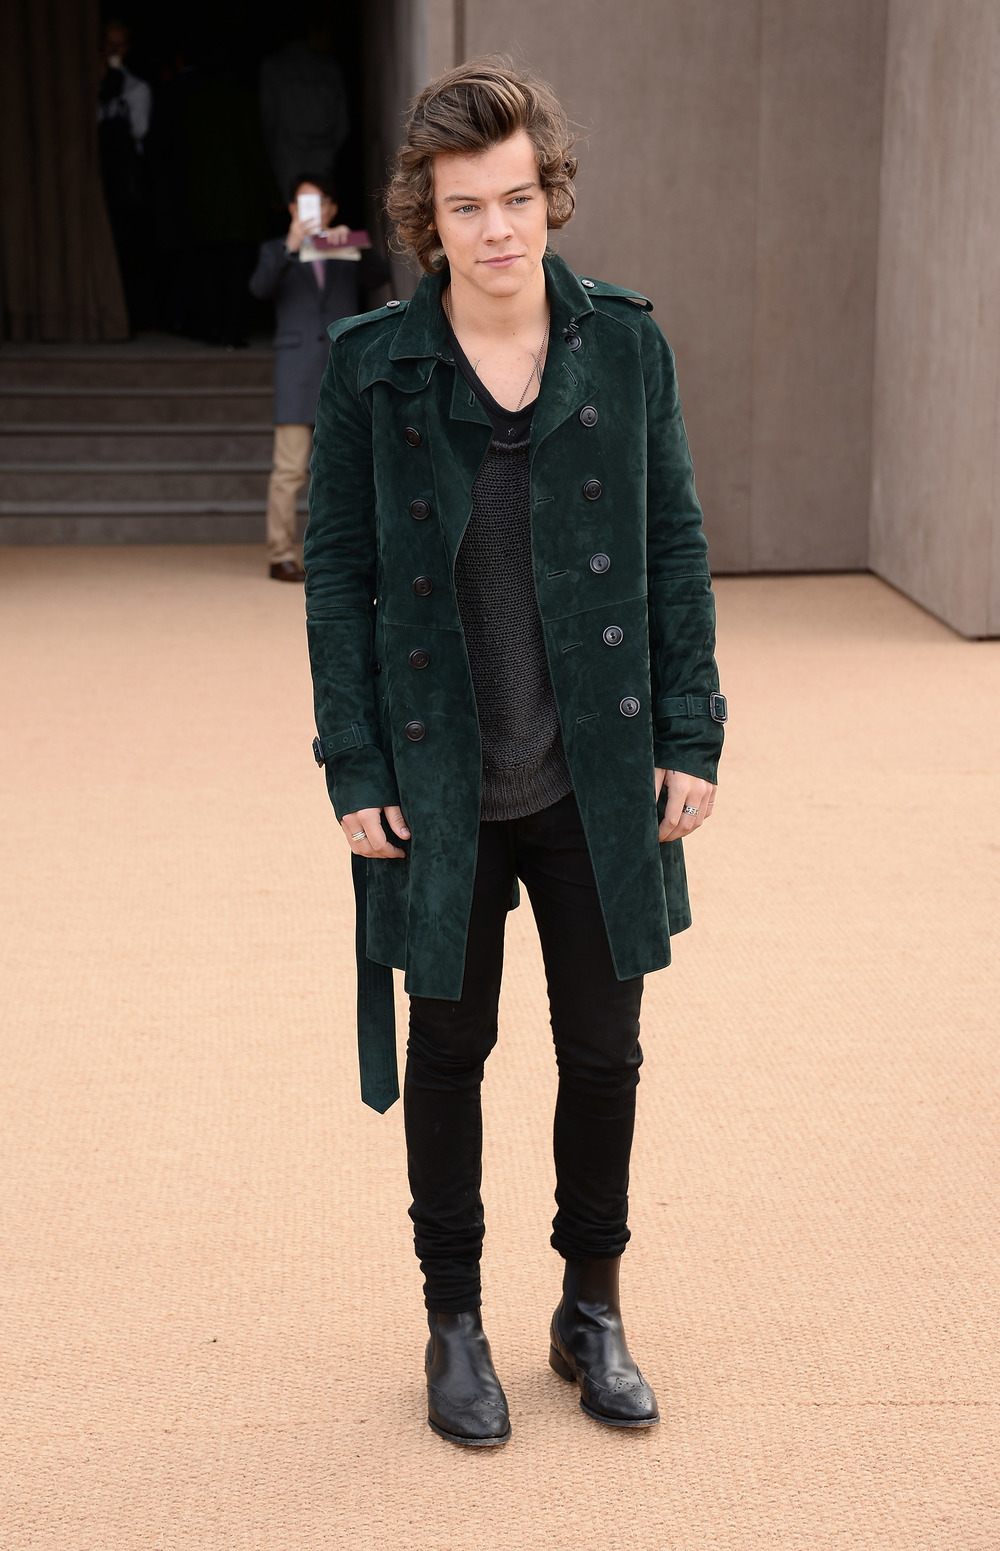 Harry-Styles-wearing-Burberry-at-the-Burberry-Prorsum-Womenswear-Autumn_Winter-2014-Show-in-London.jpg